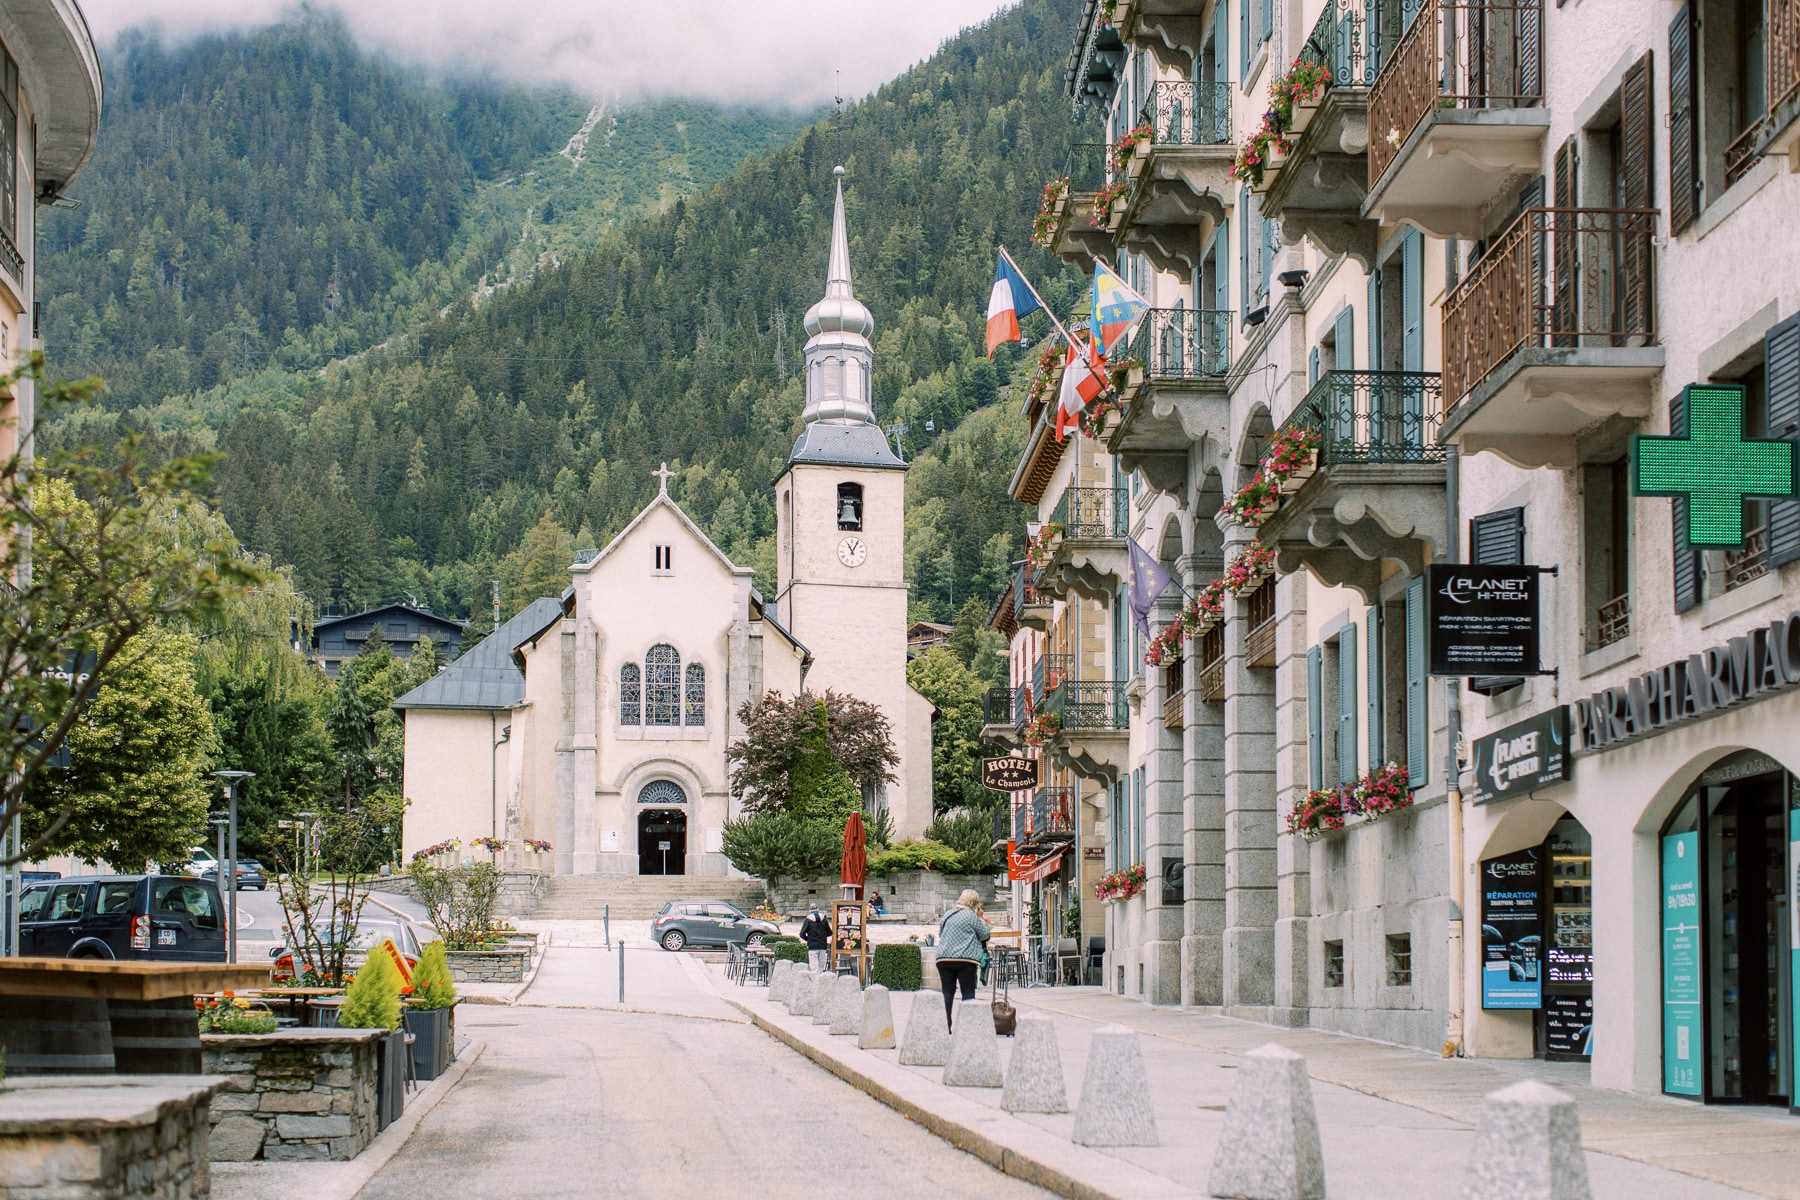 Chamonix Wedding Photographers - French Photography | The bride and groom planned their wedding in the heart of a quaint French town